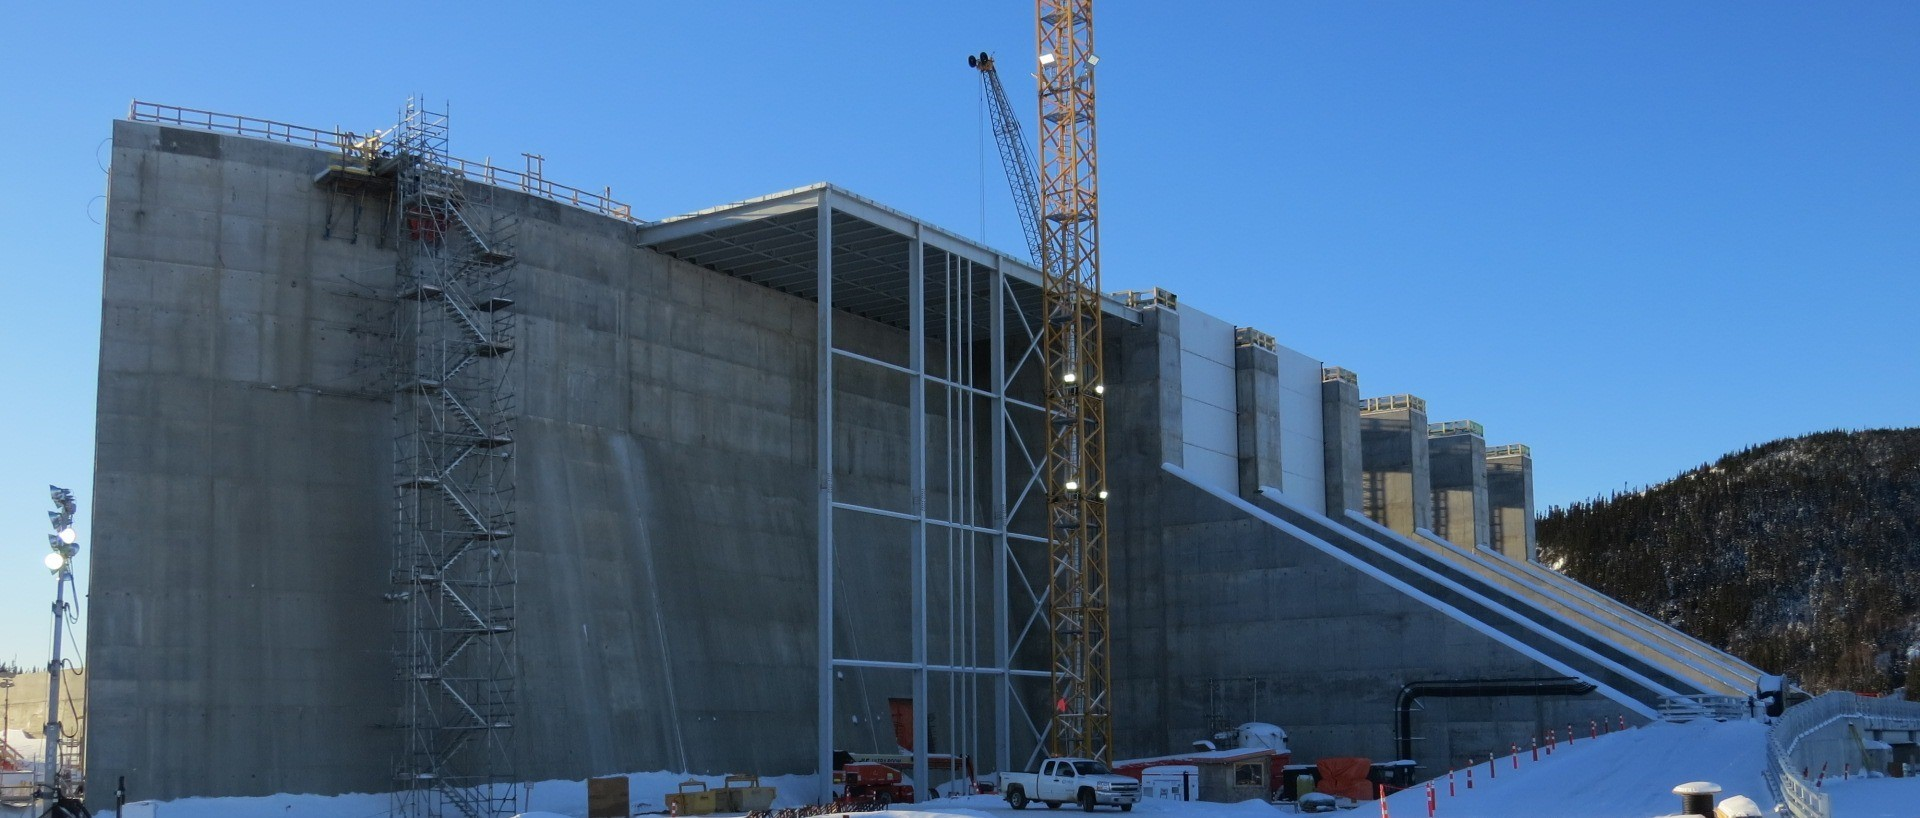 MF CENTRE TRANSITION DAM 2